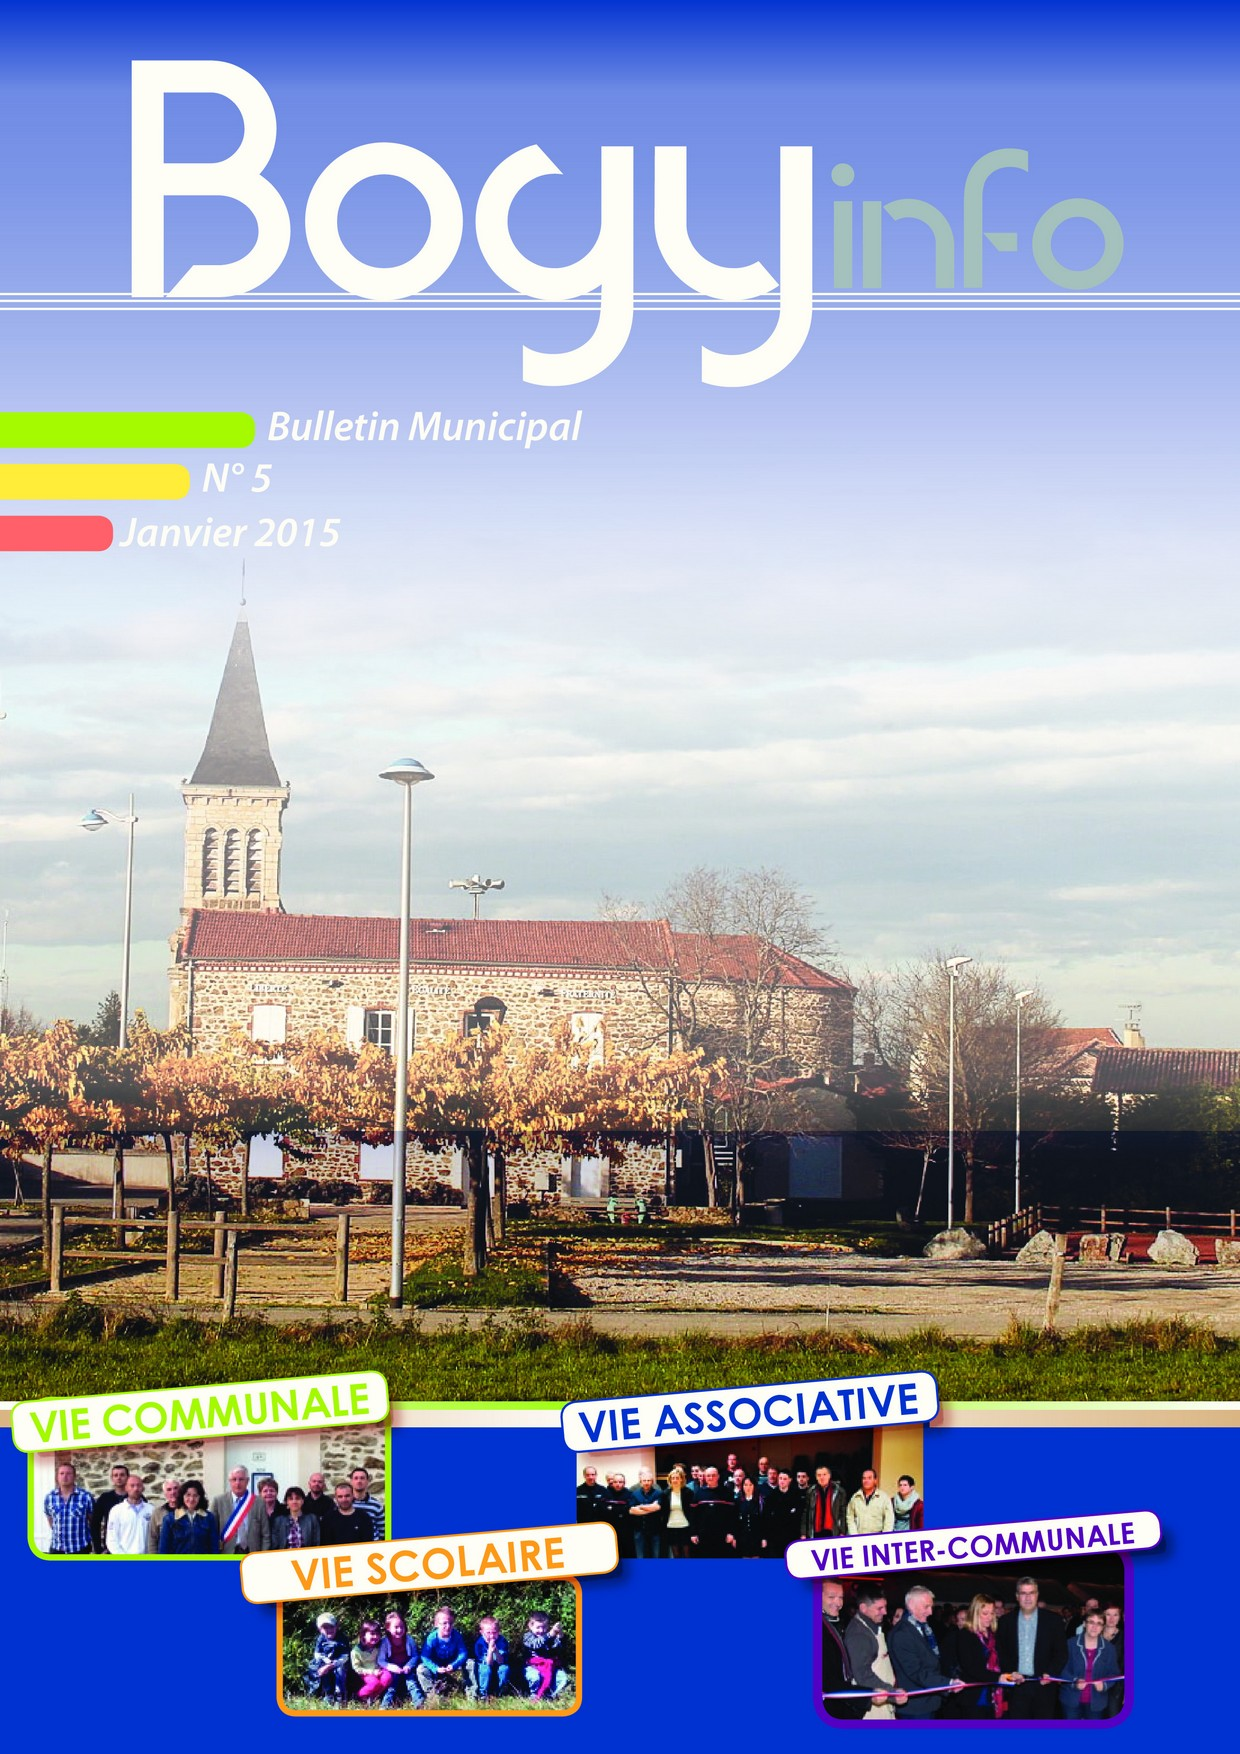 bulletin2015_couverture2.jpg